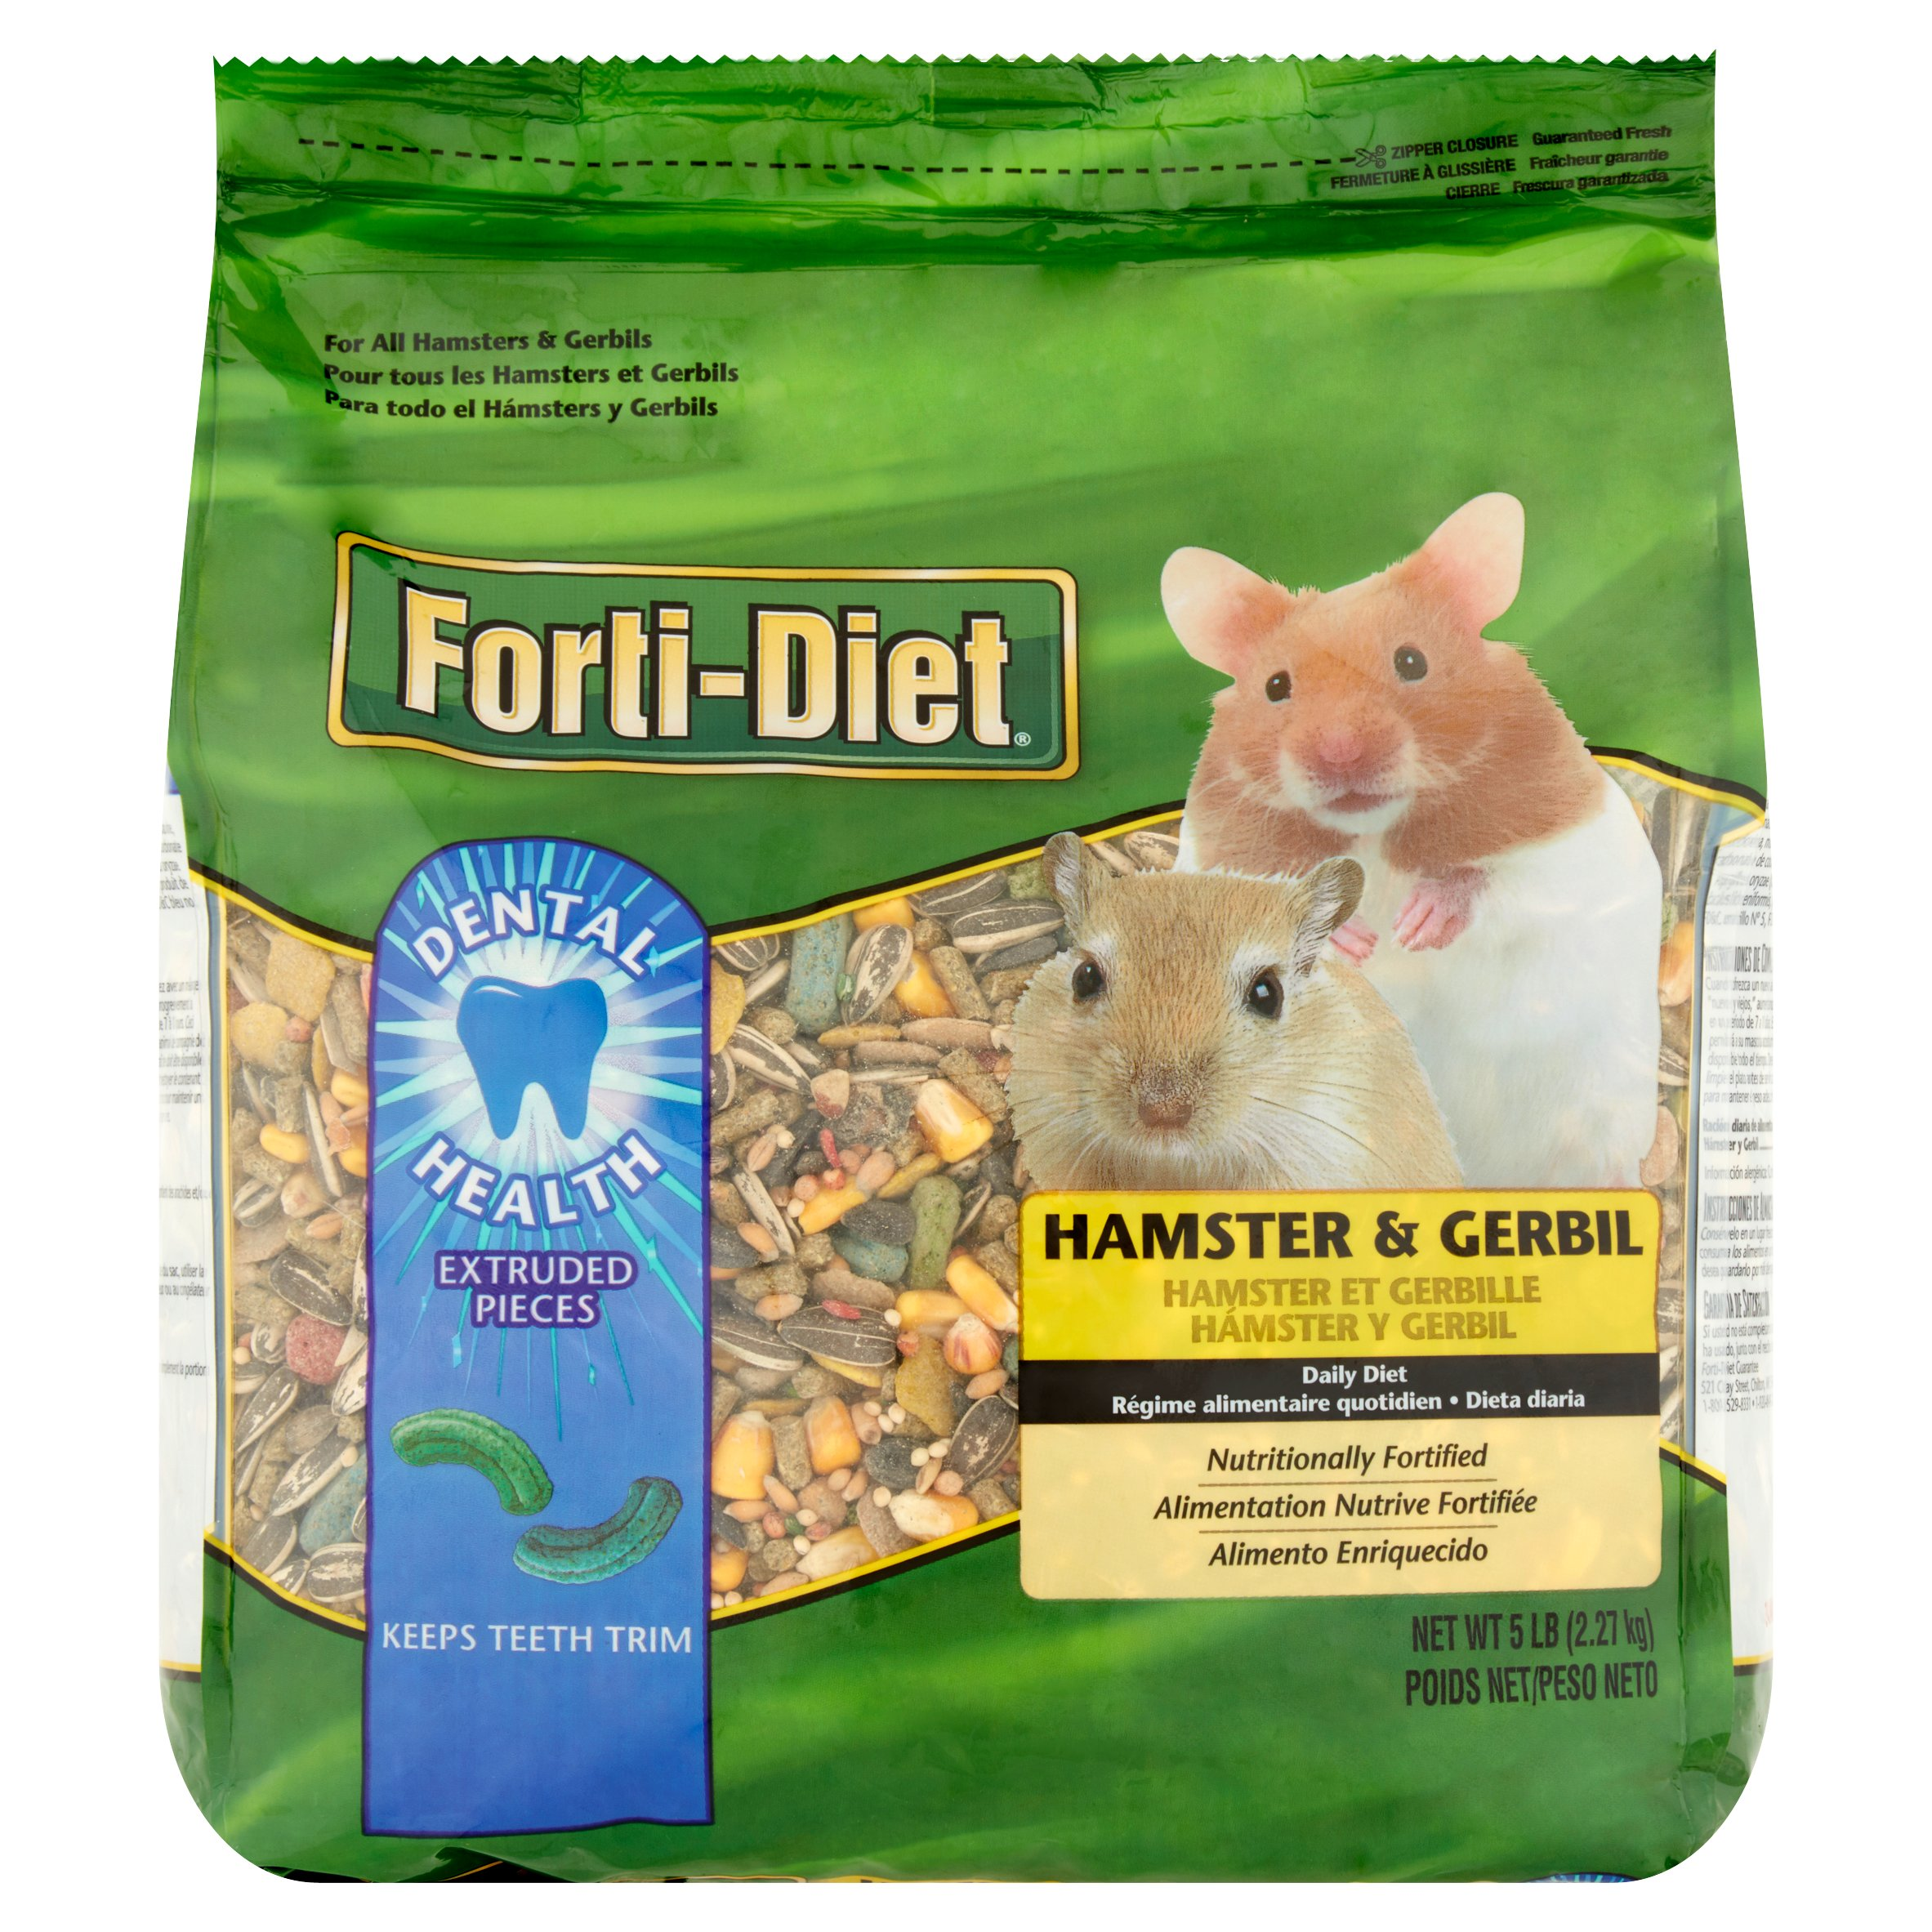 Forti-Diet Hamster & Gerbil Daily Diet, 5 lb by Wal-Mart Stores, Inc.